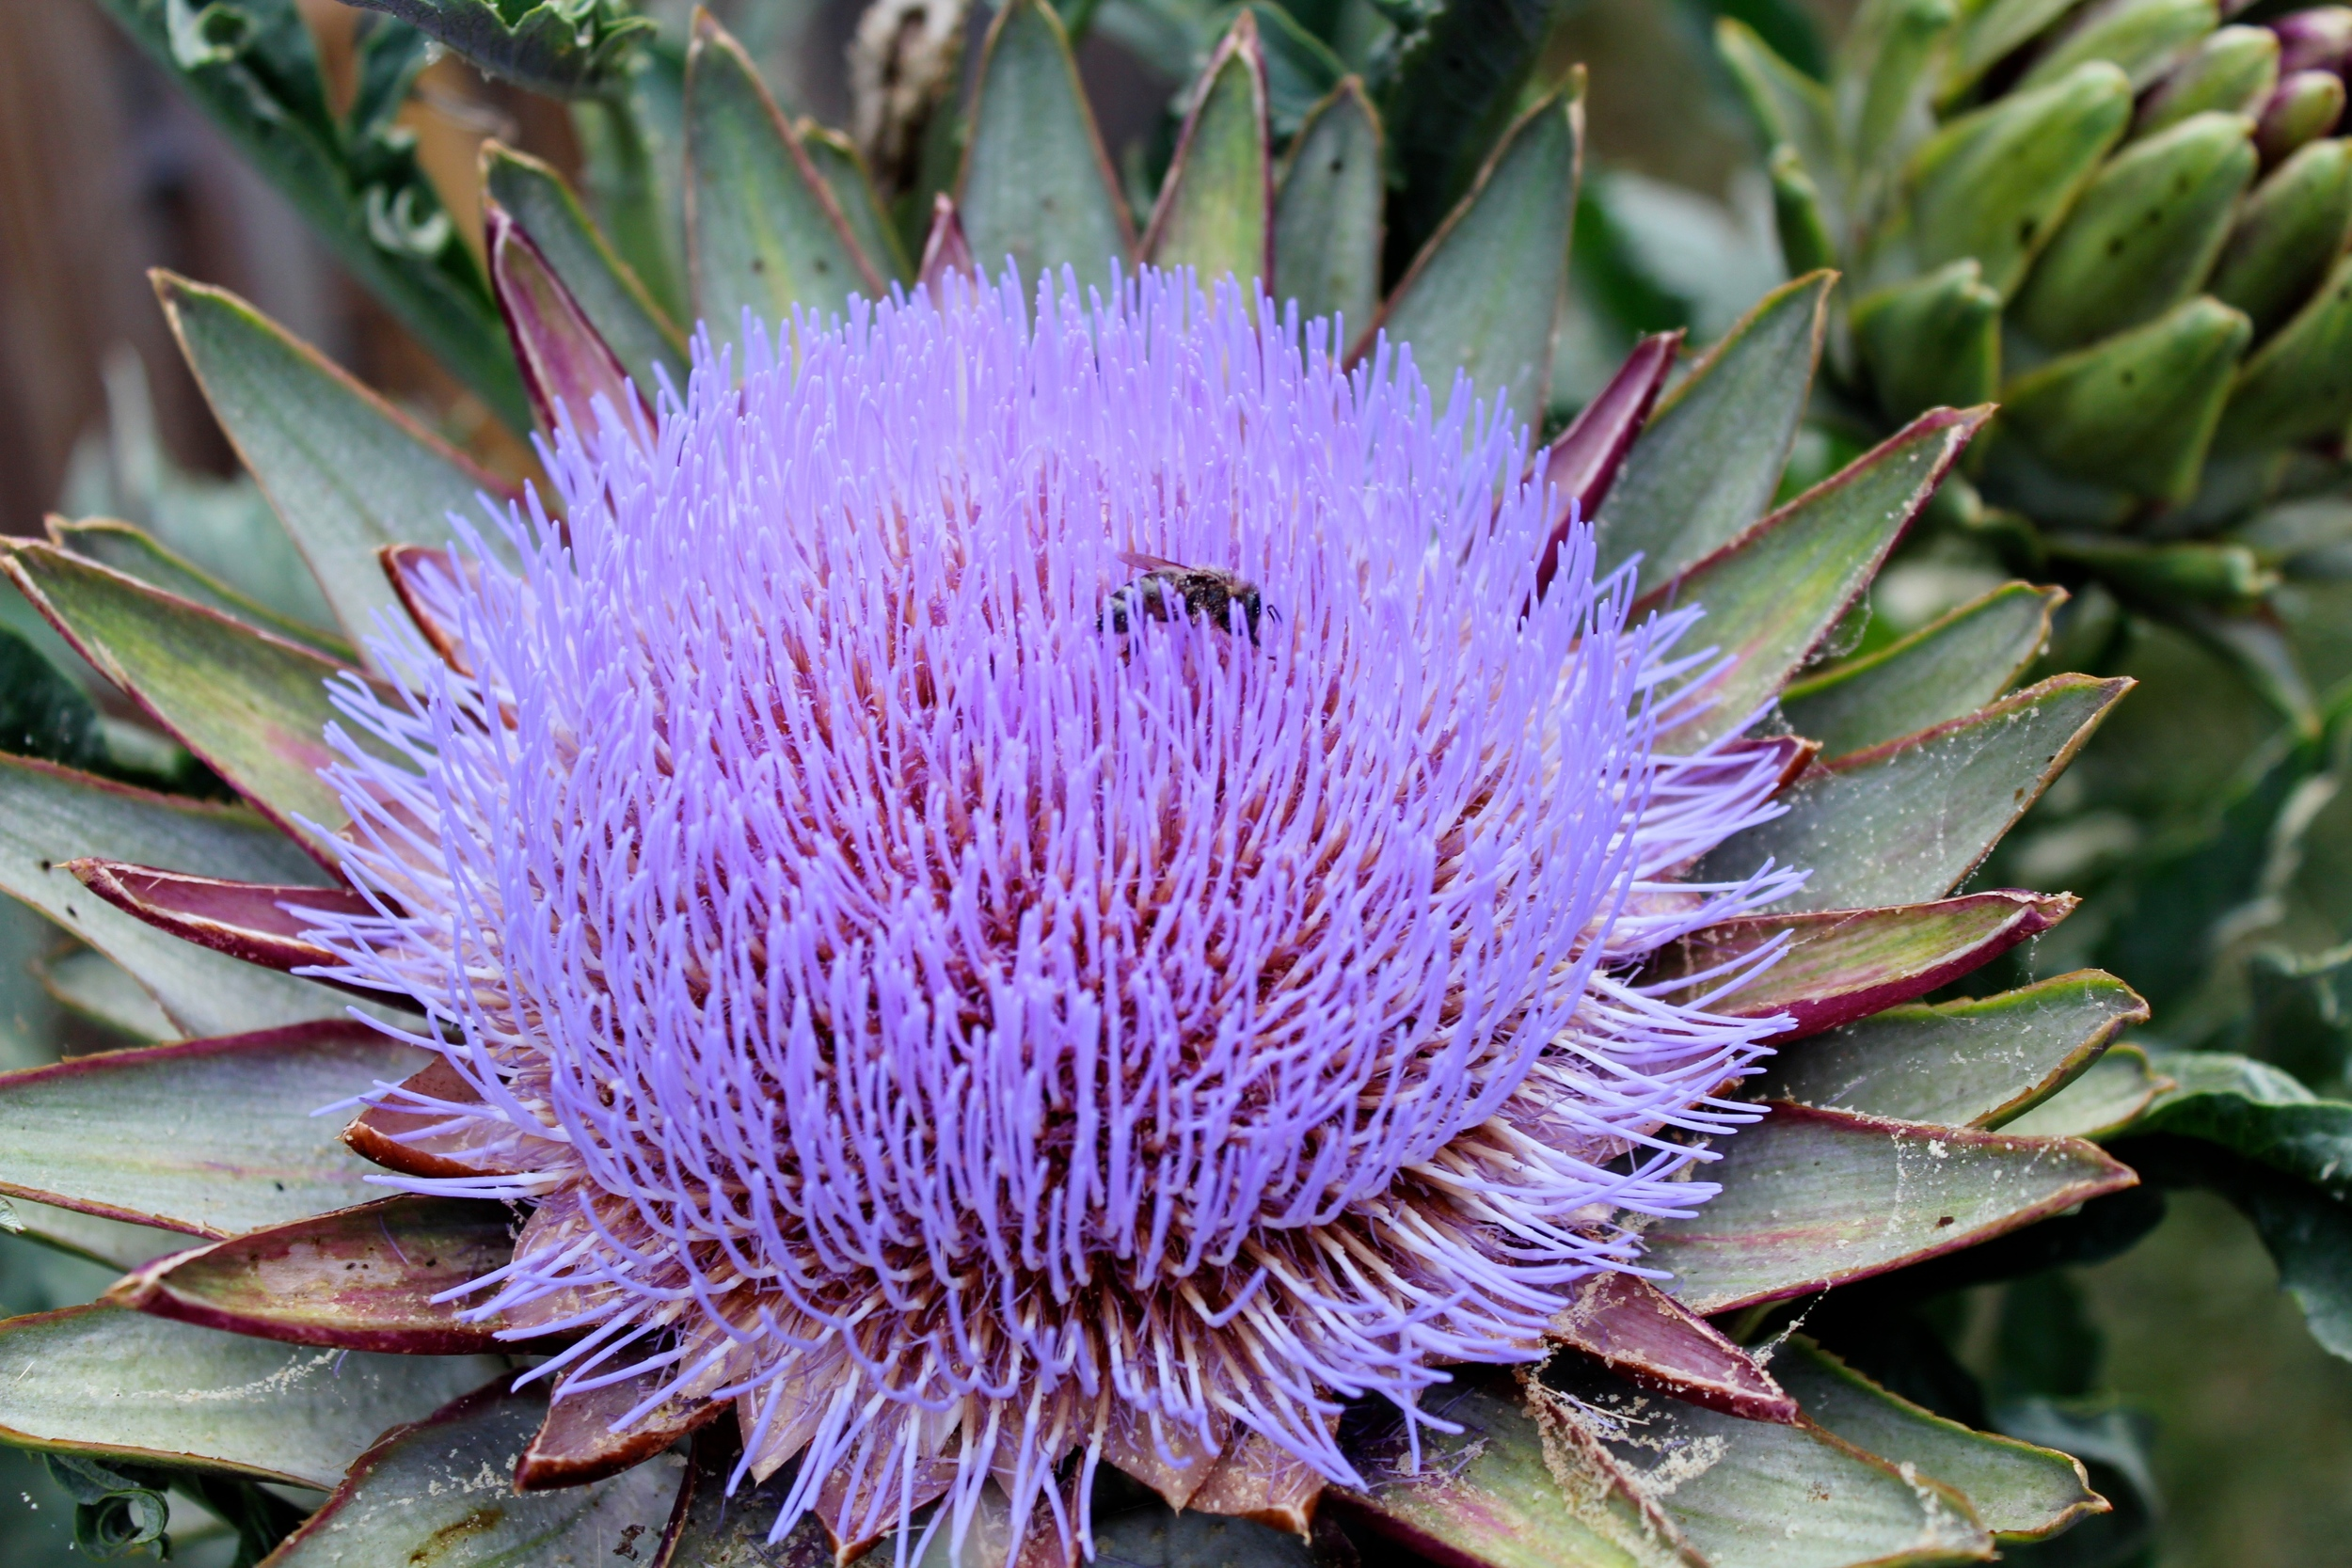 Bee in artichoke flower, Oakland, 2014